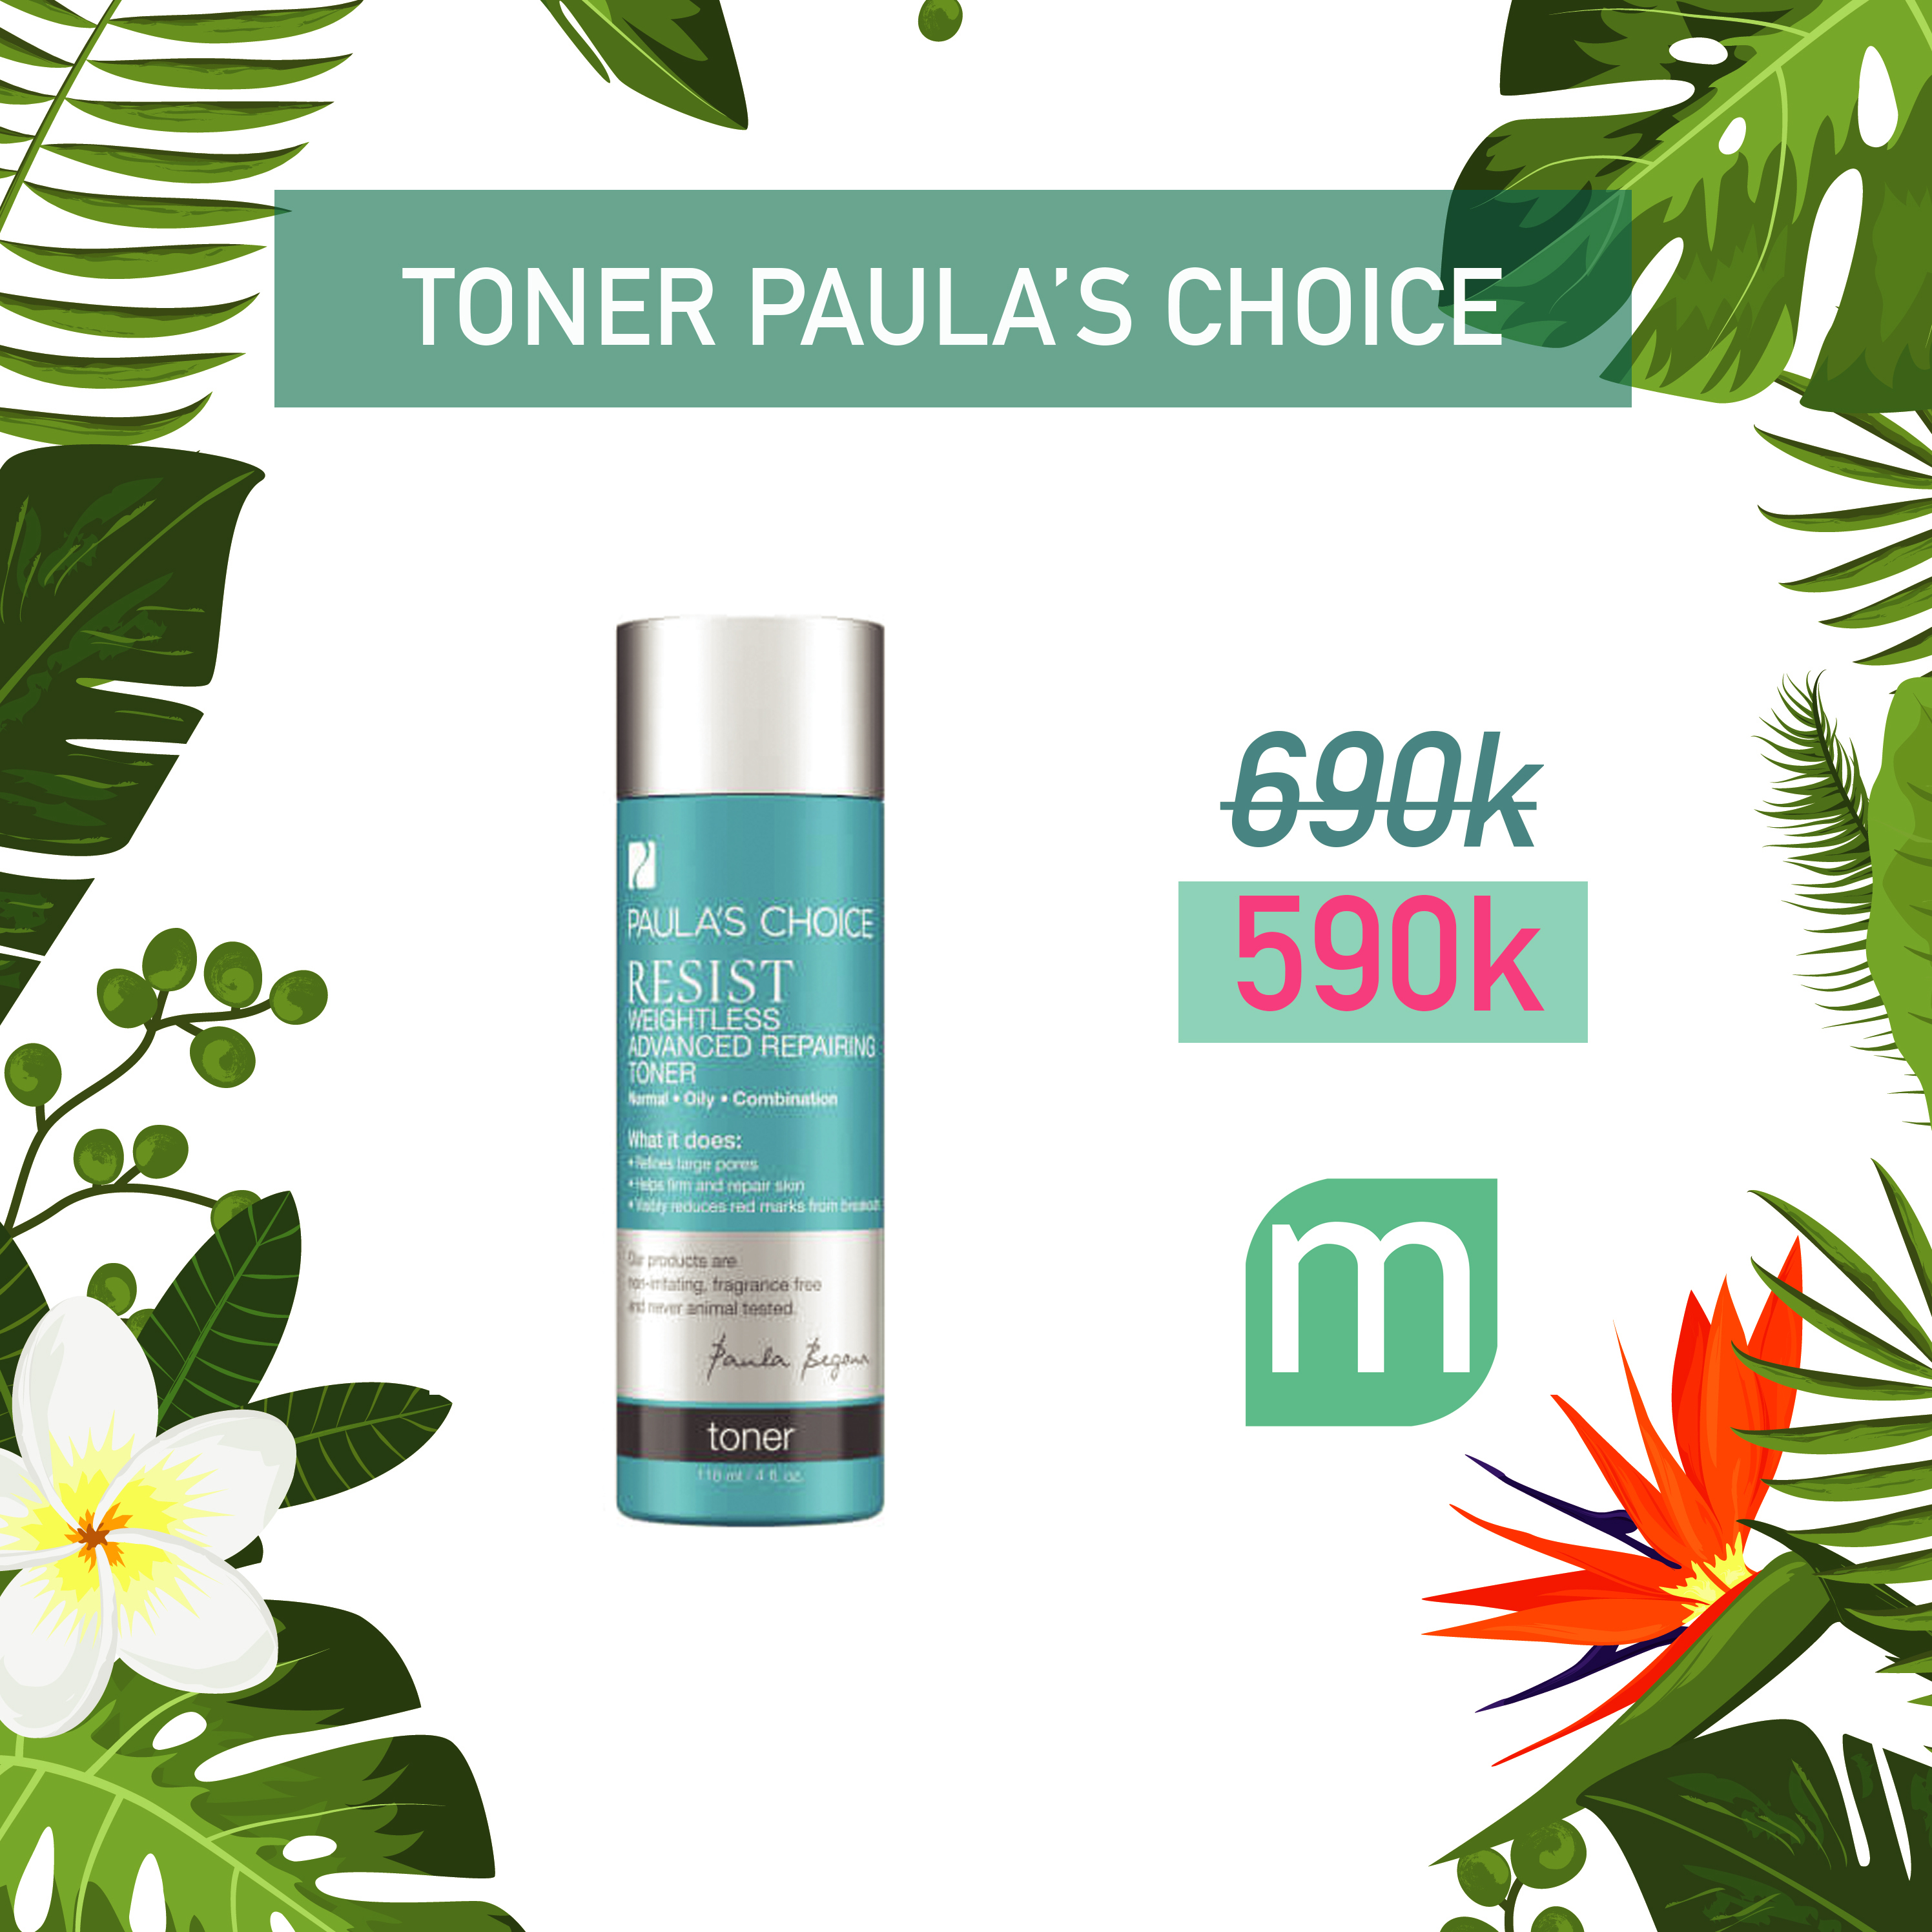 deal-shock-skincare-highend-bung-no-cung-mint-3years